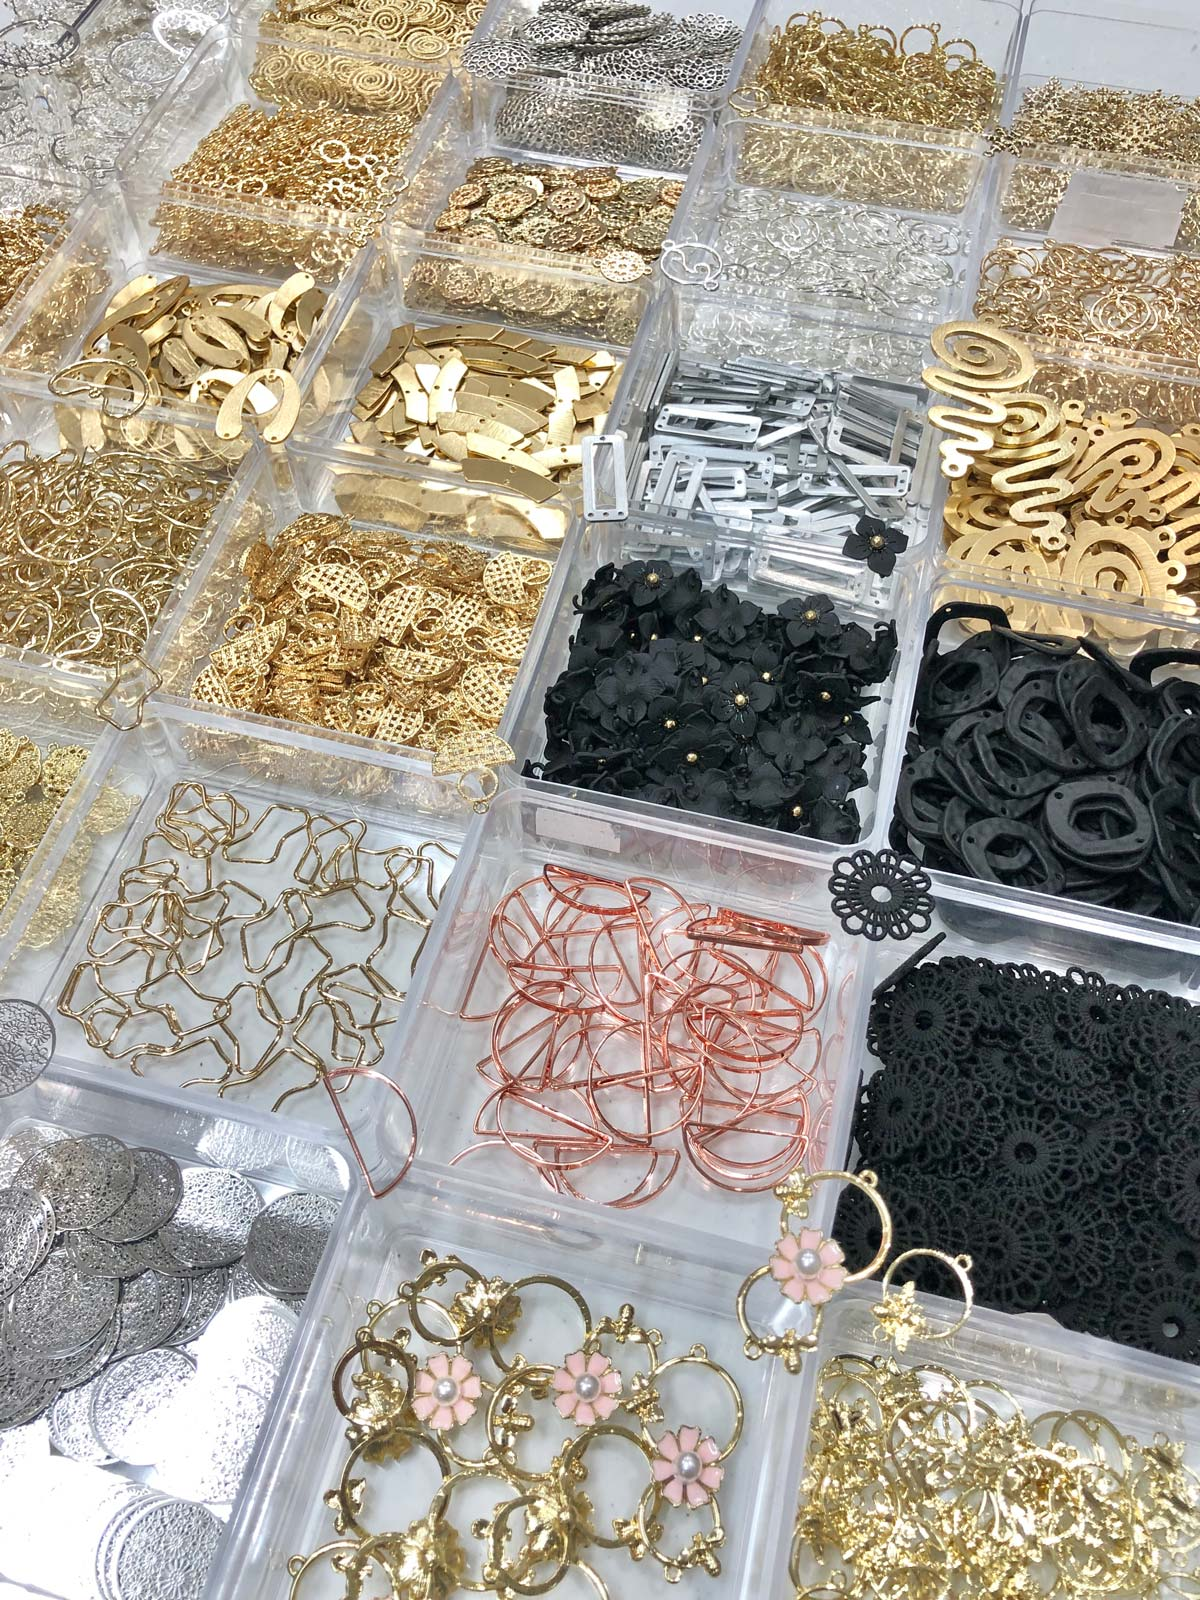 The Whimsical Bead Supplies